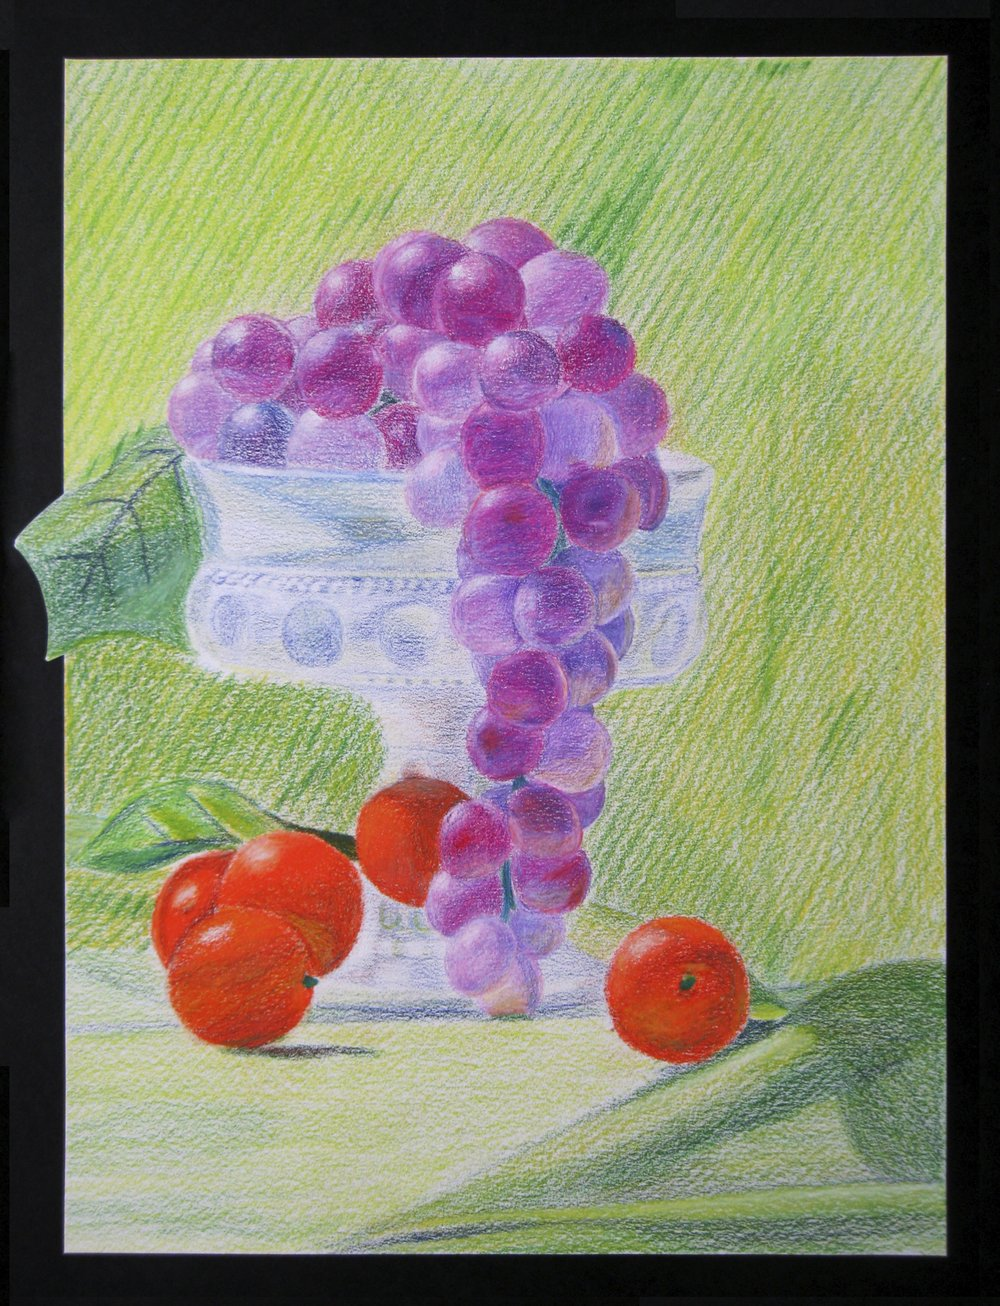 Prismacolor on Strathmore 400 Series Medium Surface 80# - Fall 2010